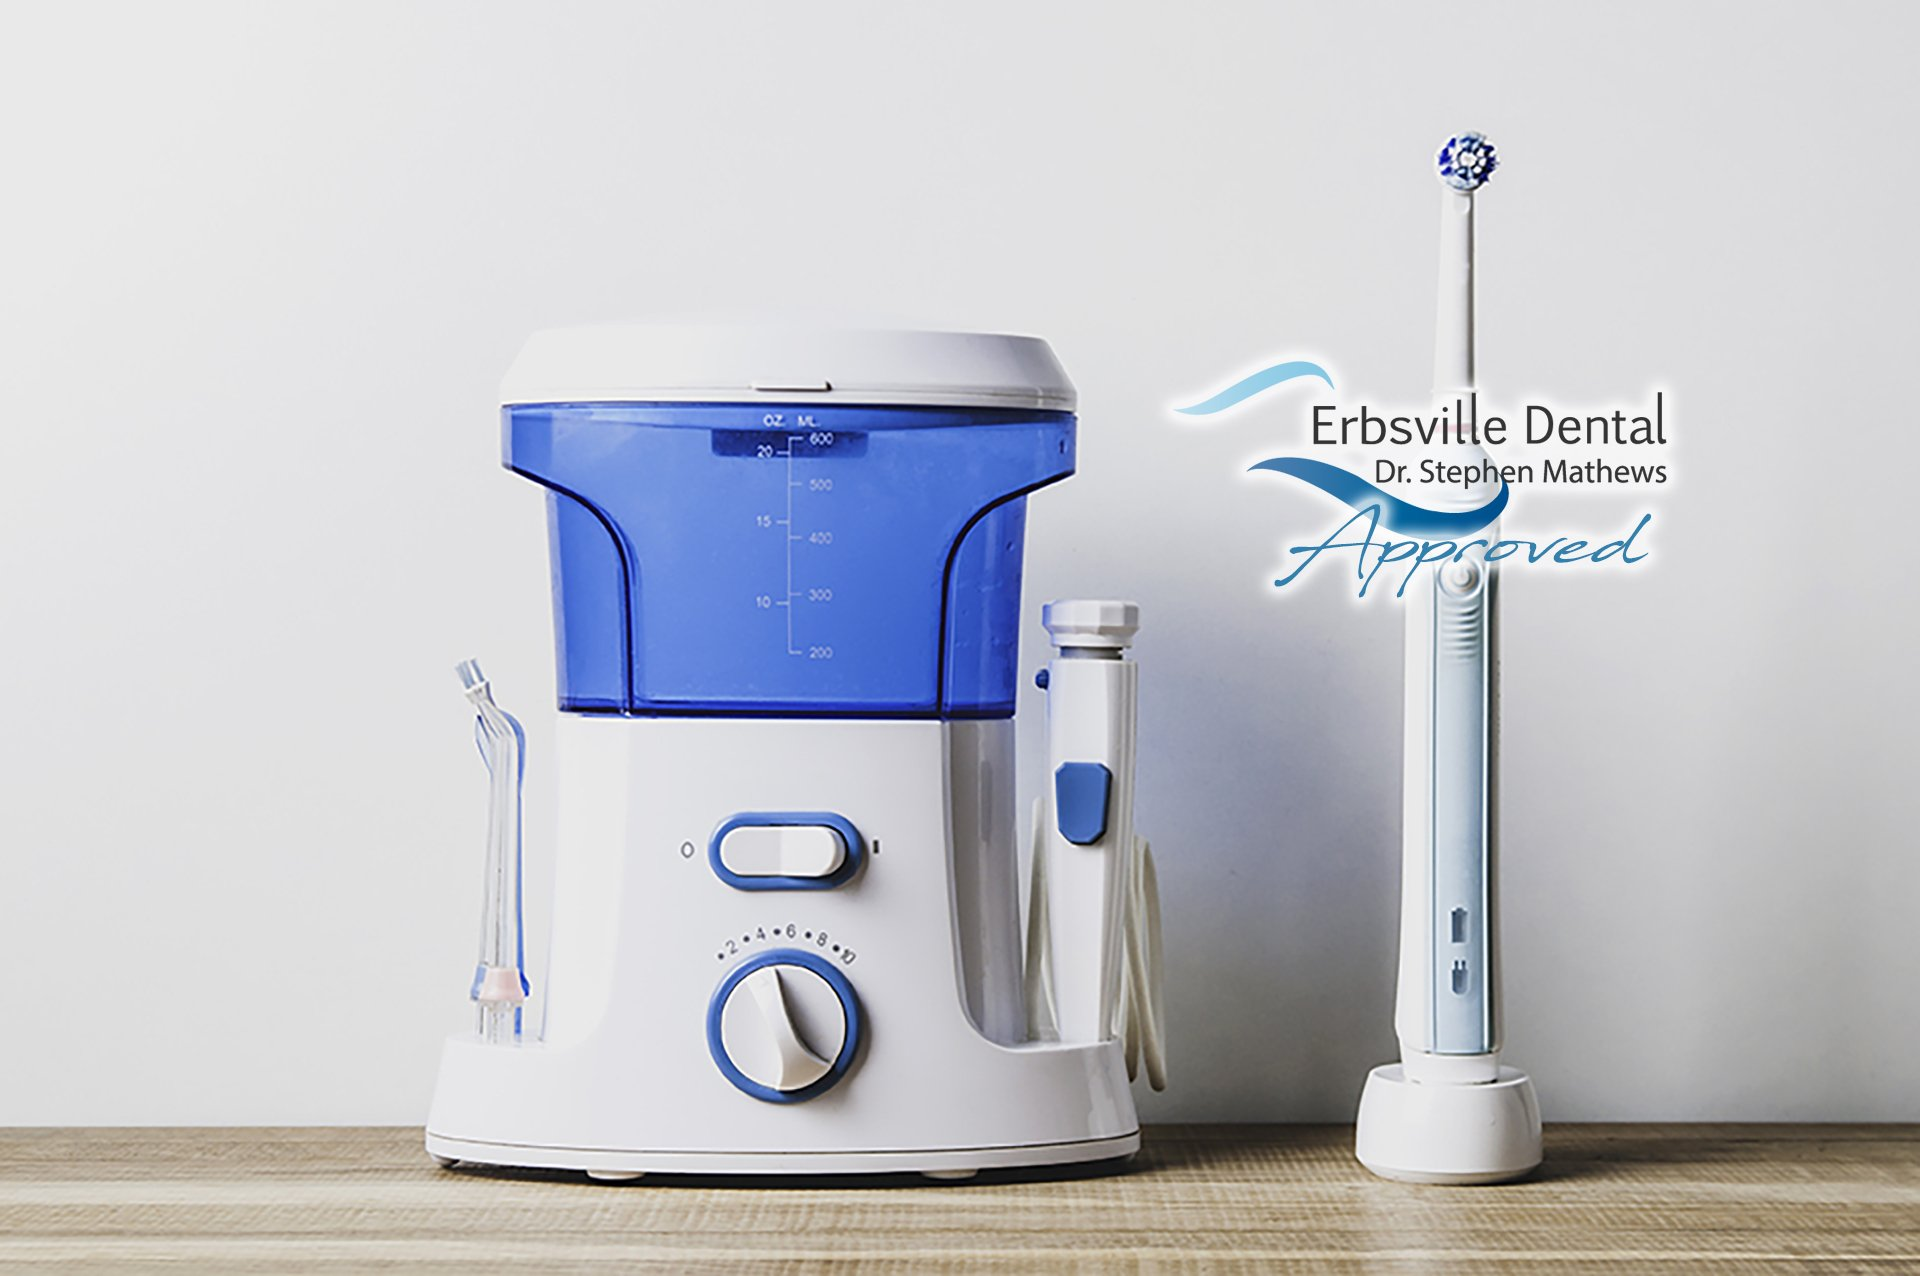 Waterpik and Erbsville Dental